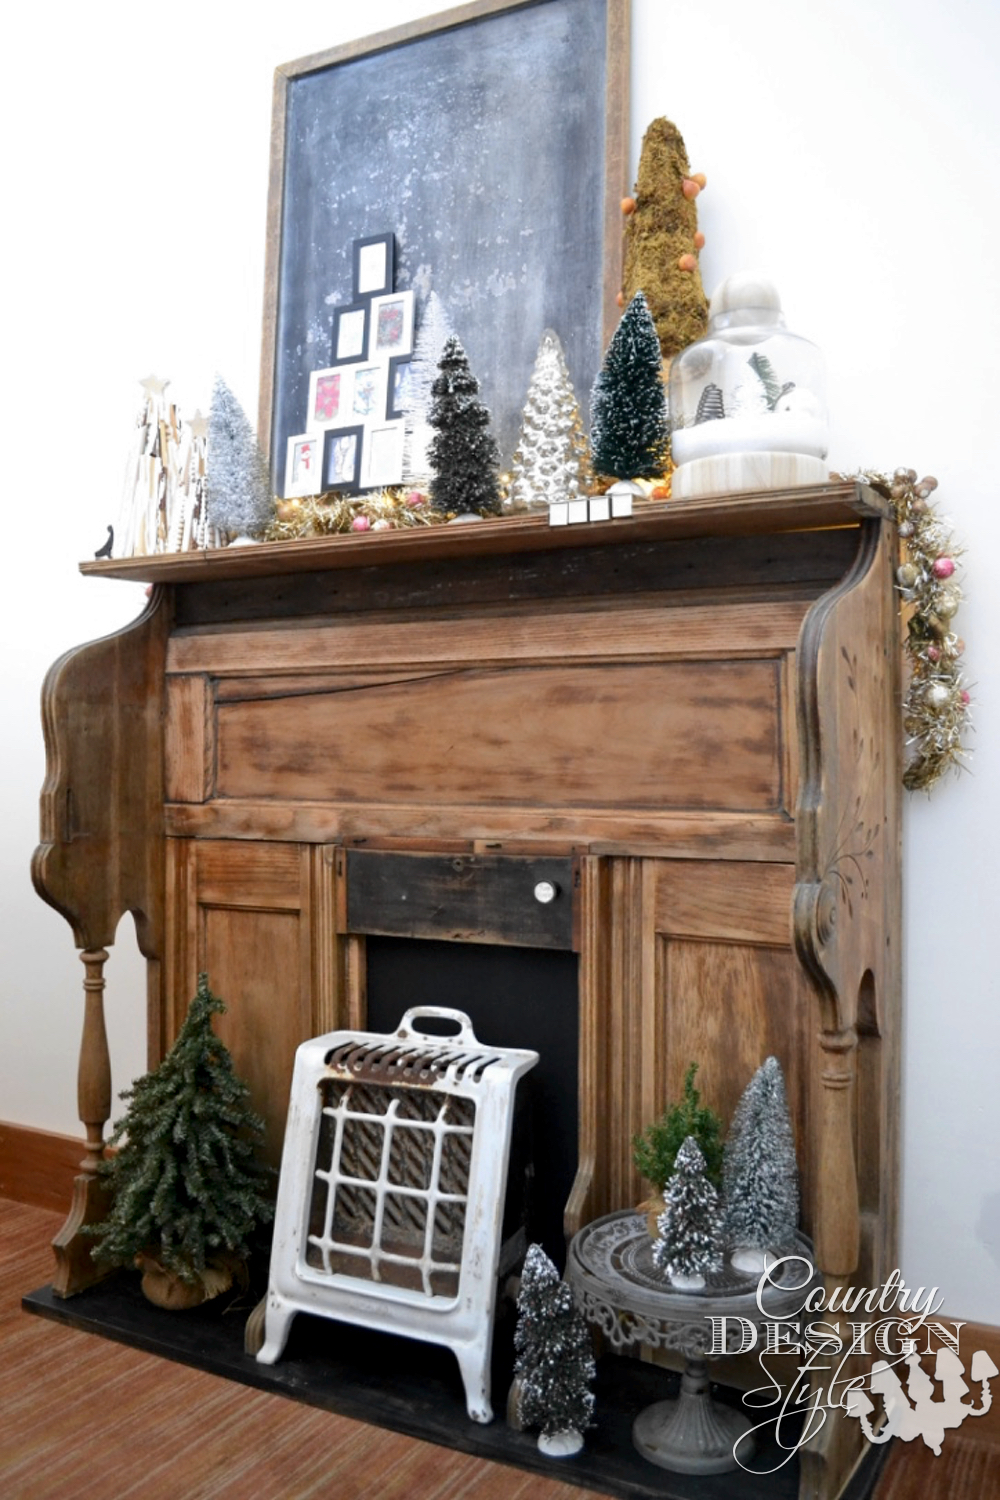 Charming Unique Fireplace Makeover in One Hour | Country Design Style | countrydesignstyle.com